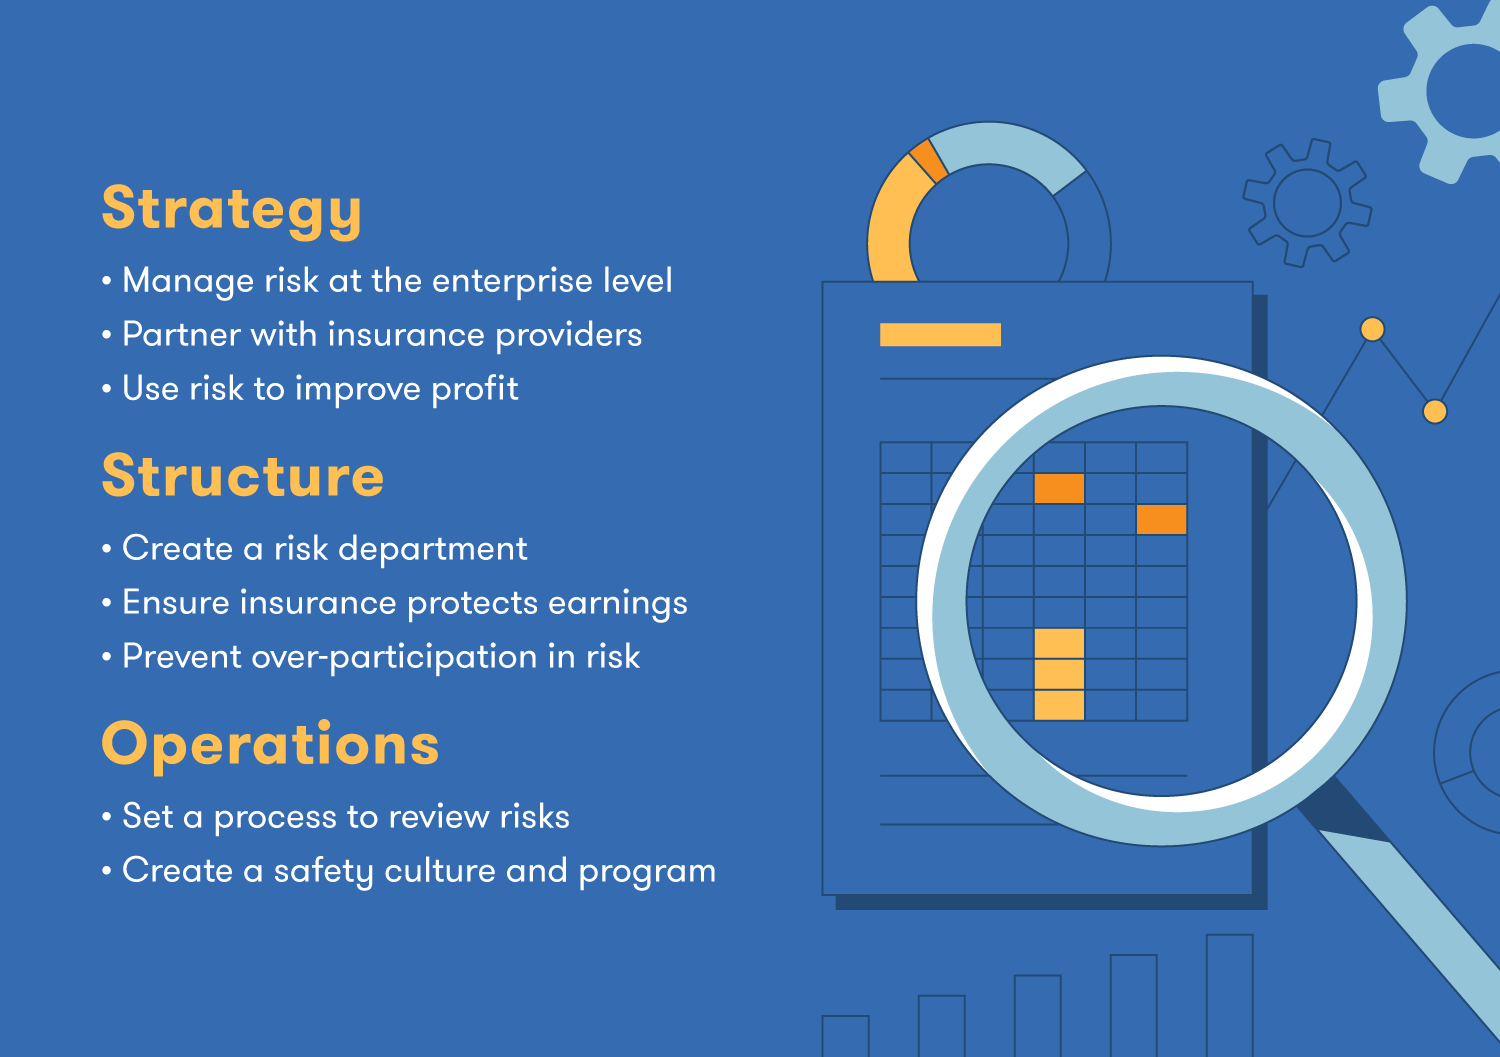 Illustration showing the components of construction risk plan, including strategy, structure, and operations.